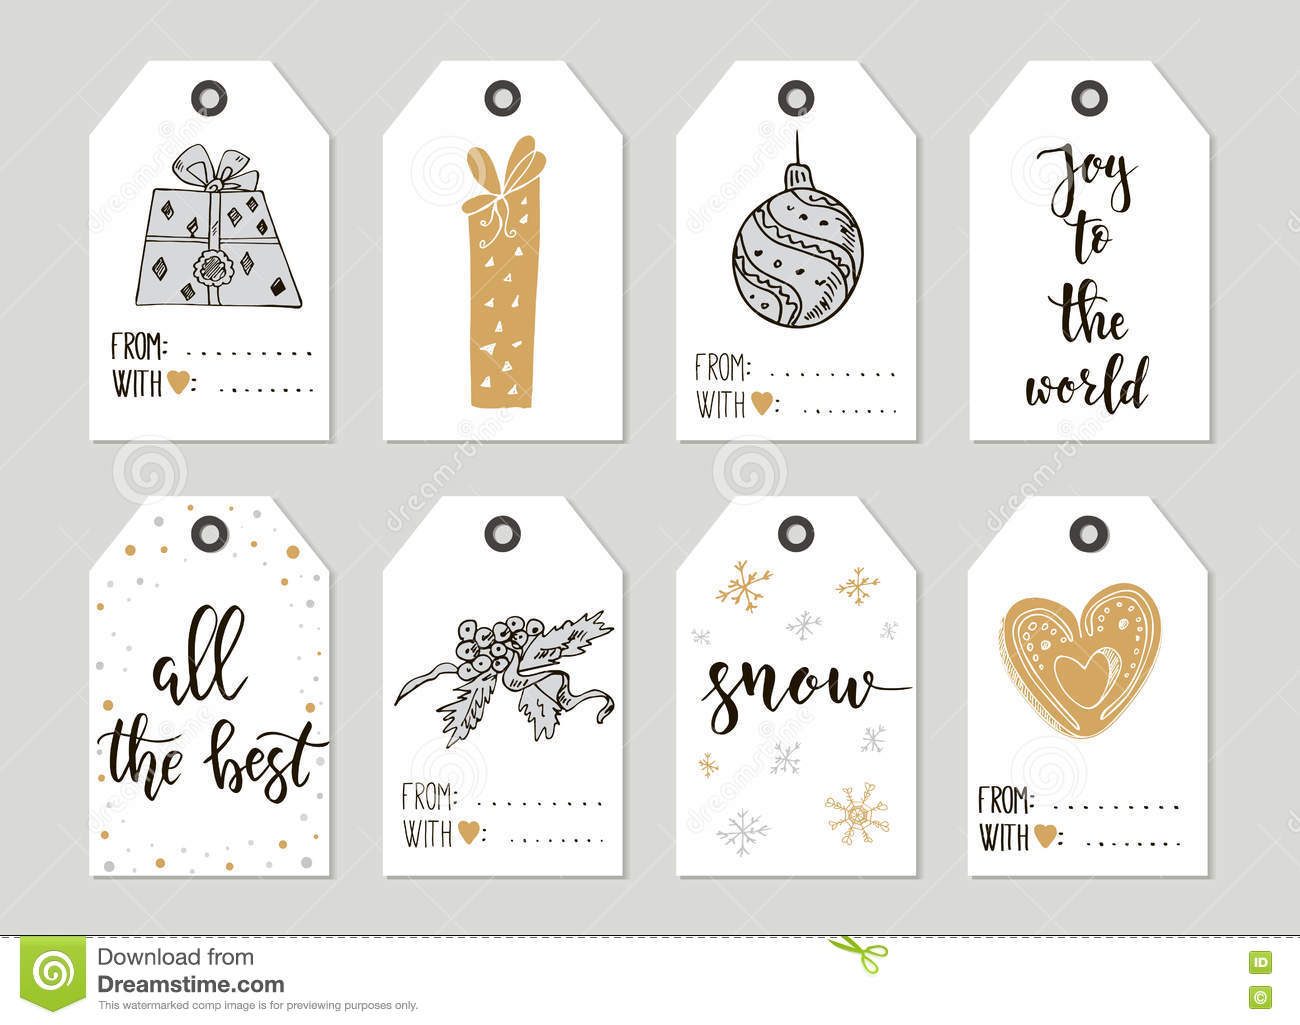 merry christmas and happy new year vintage gift tags and cards with calligraphy handwritten lettering hand drawn design elements printable items